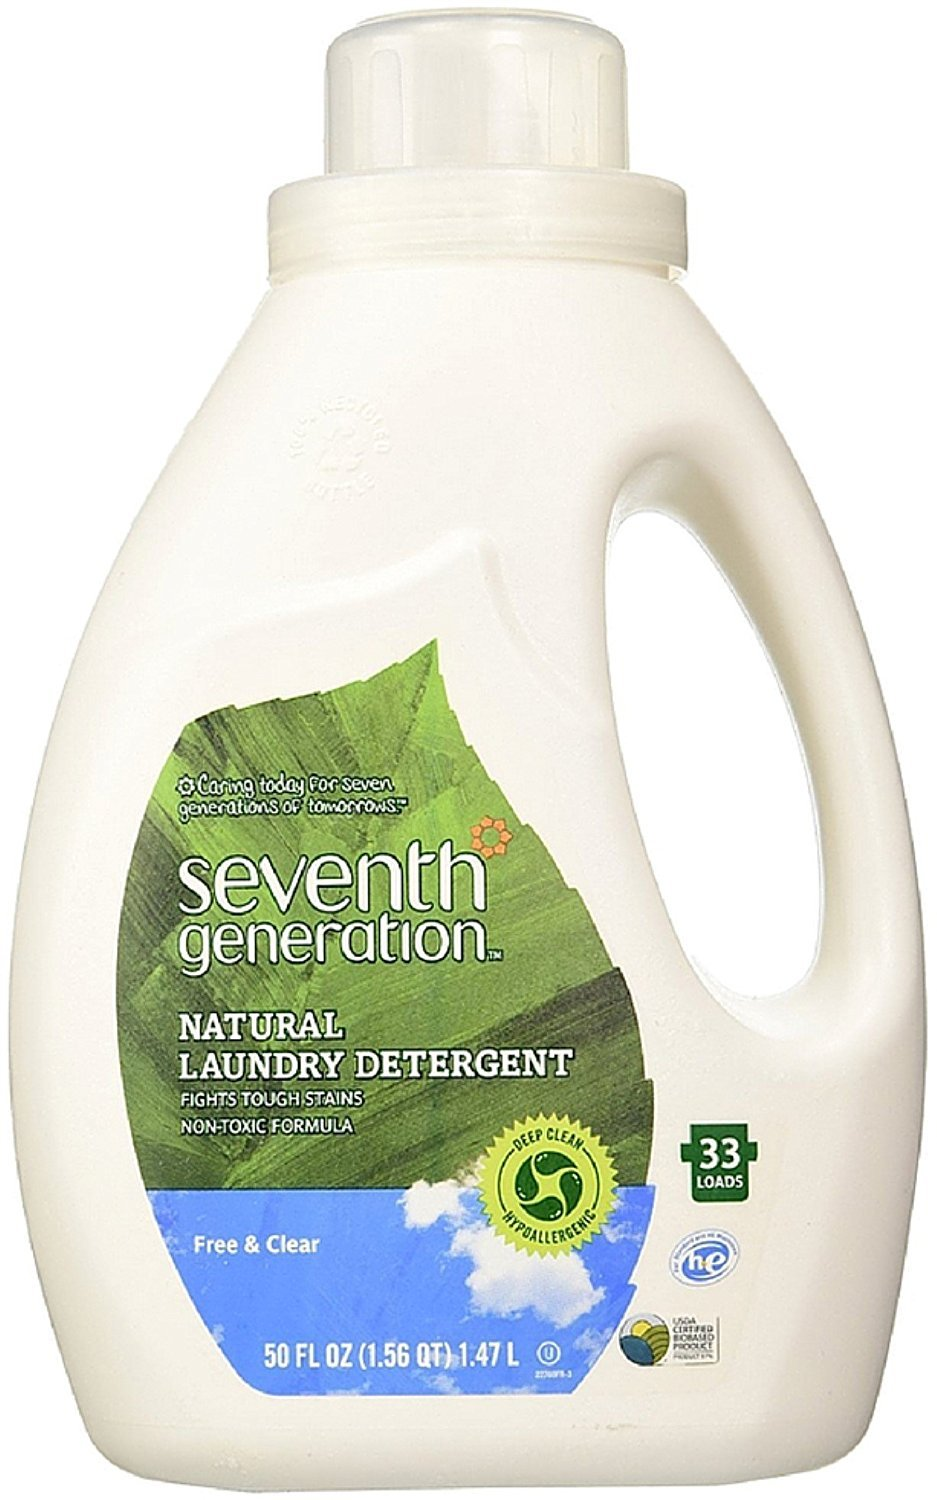 Seventh Generation Natural Laundry Detergent, Free & Clear 50 oz by Seventh Generation B01IAIM204